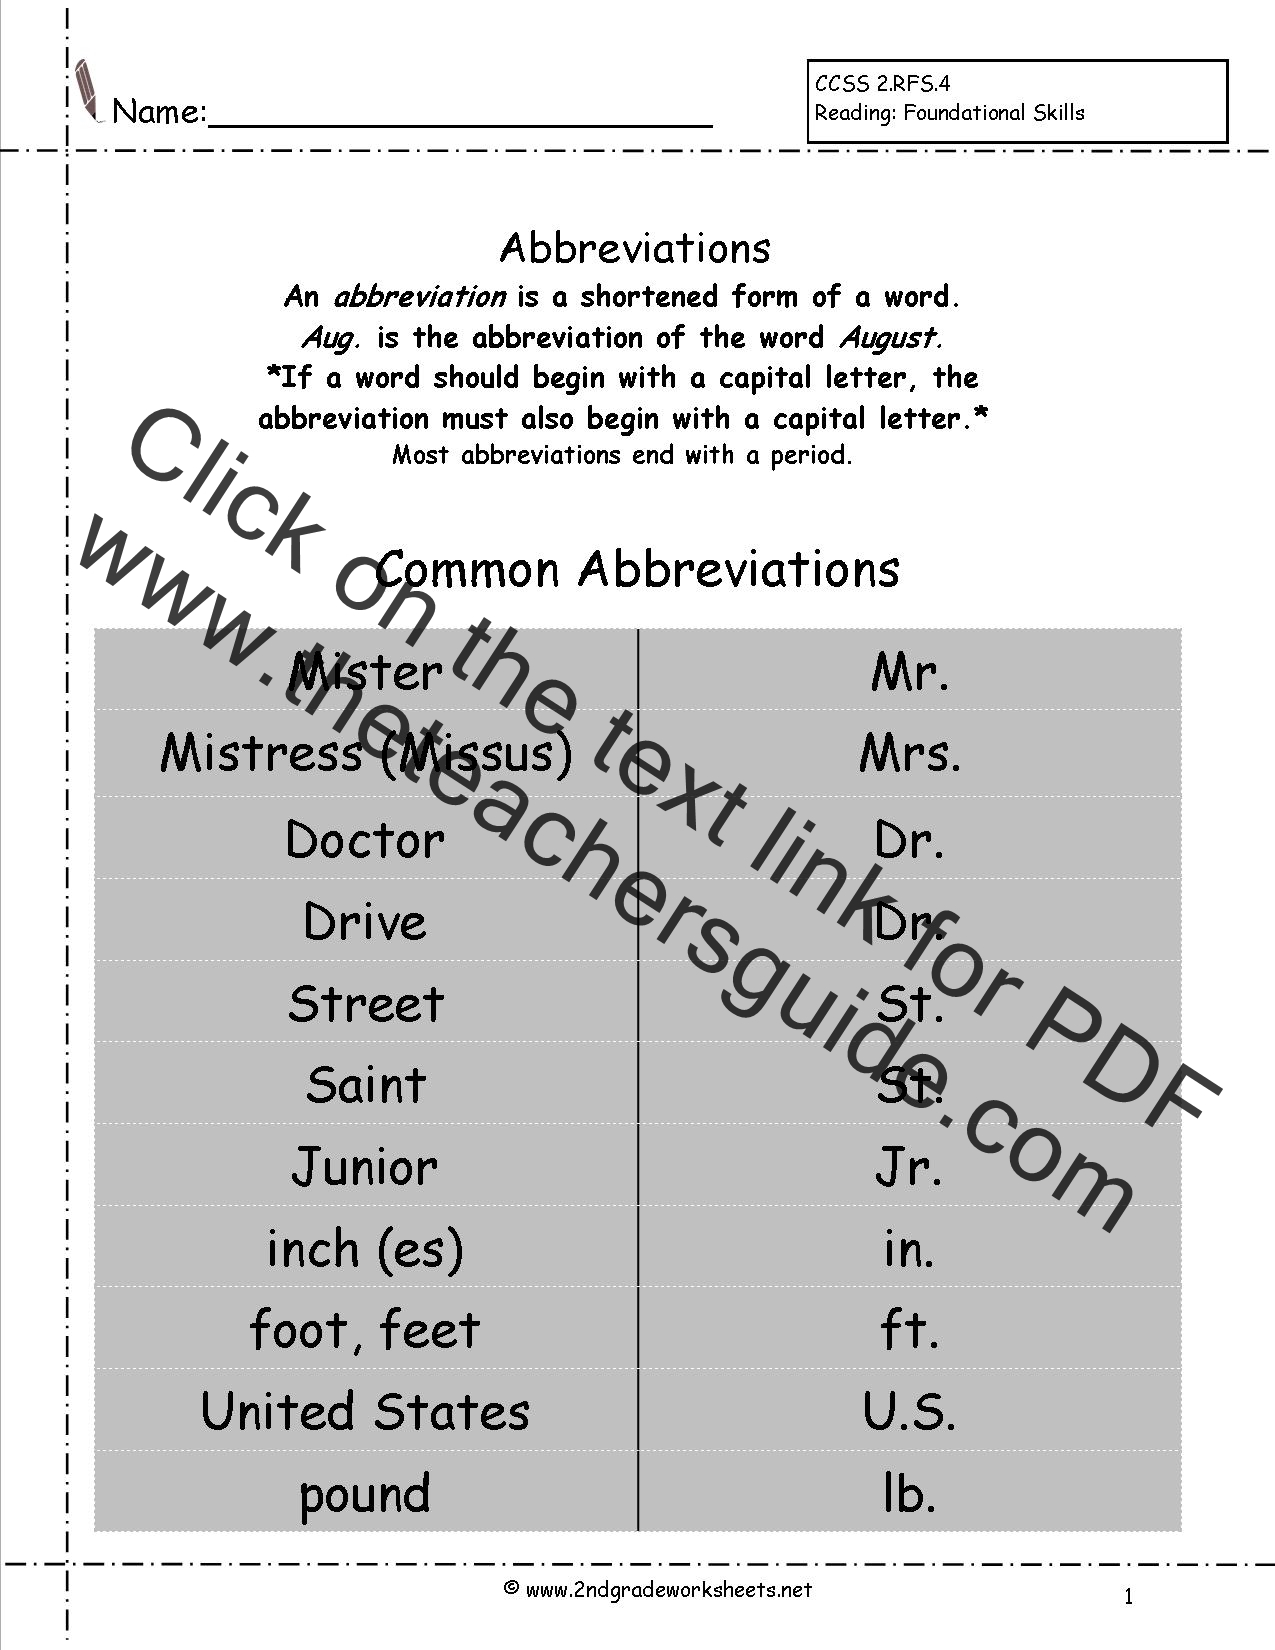 Free LanguageGrammar Worksheets and Printouts – Writing Conventions Worksheets